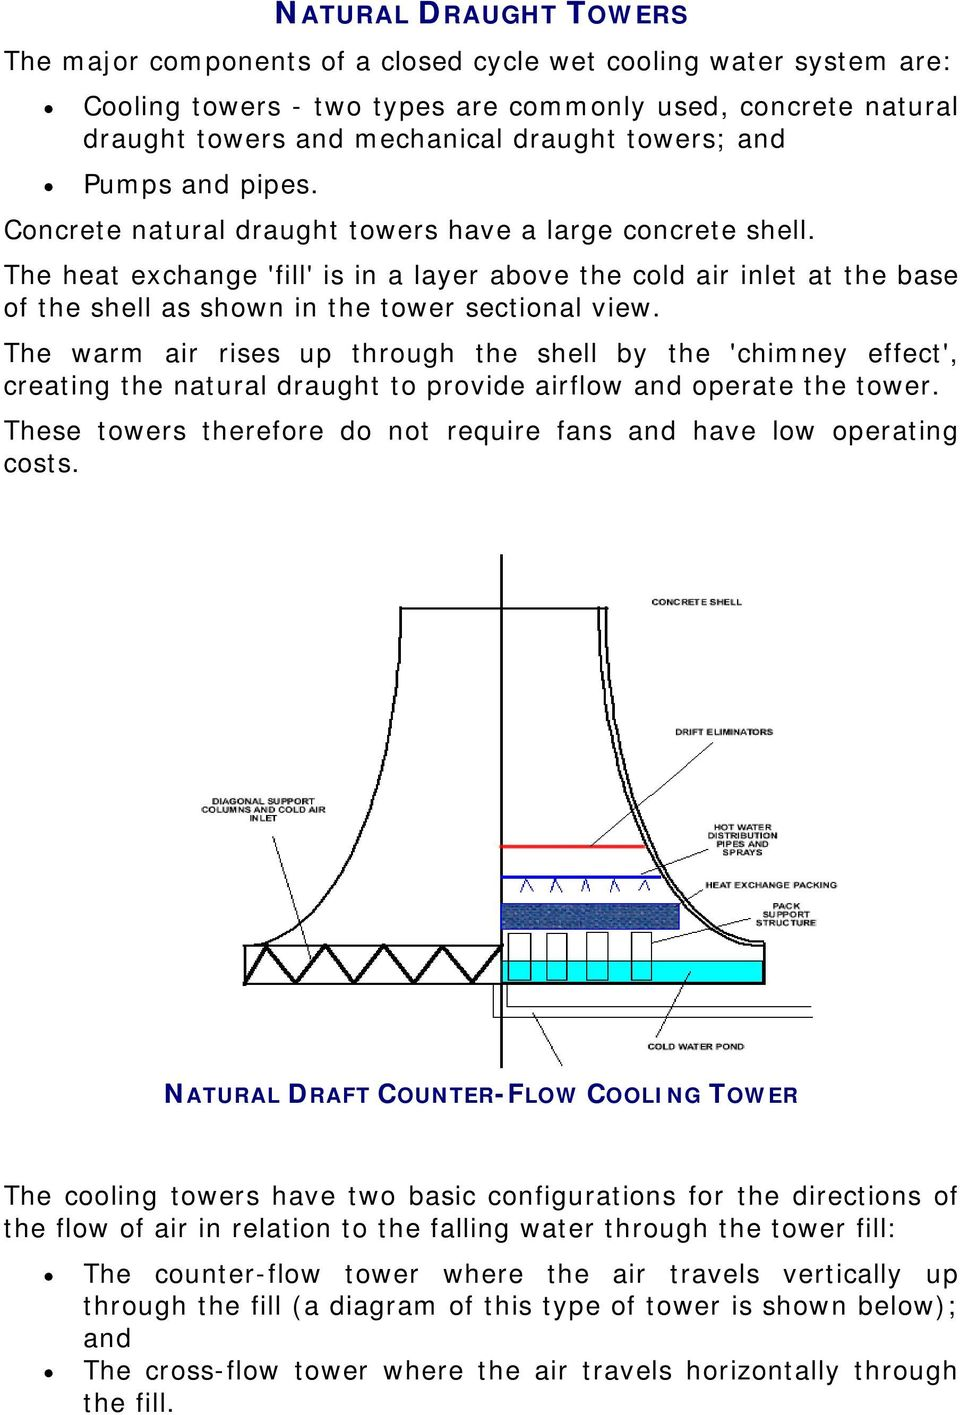 The heat exchange 'fill' is in a layer above the cold air inlet at the base of the shell as shown in the tower sectional view.